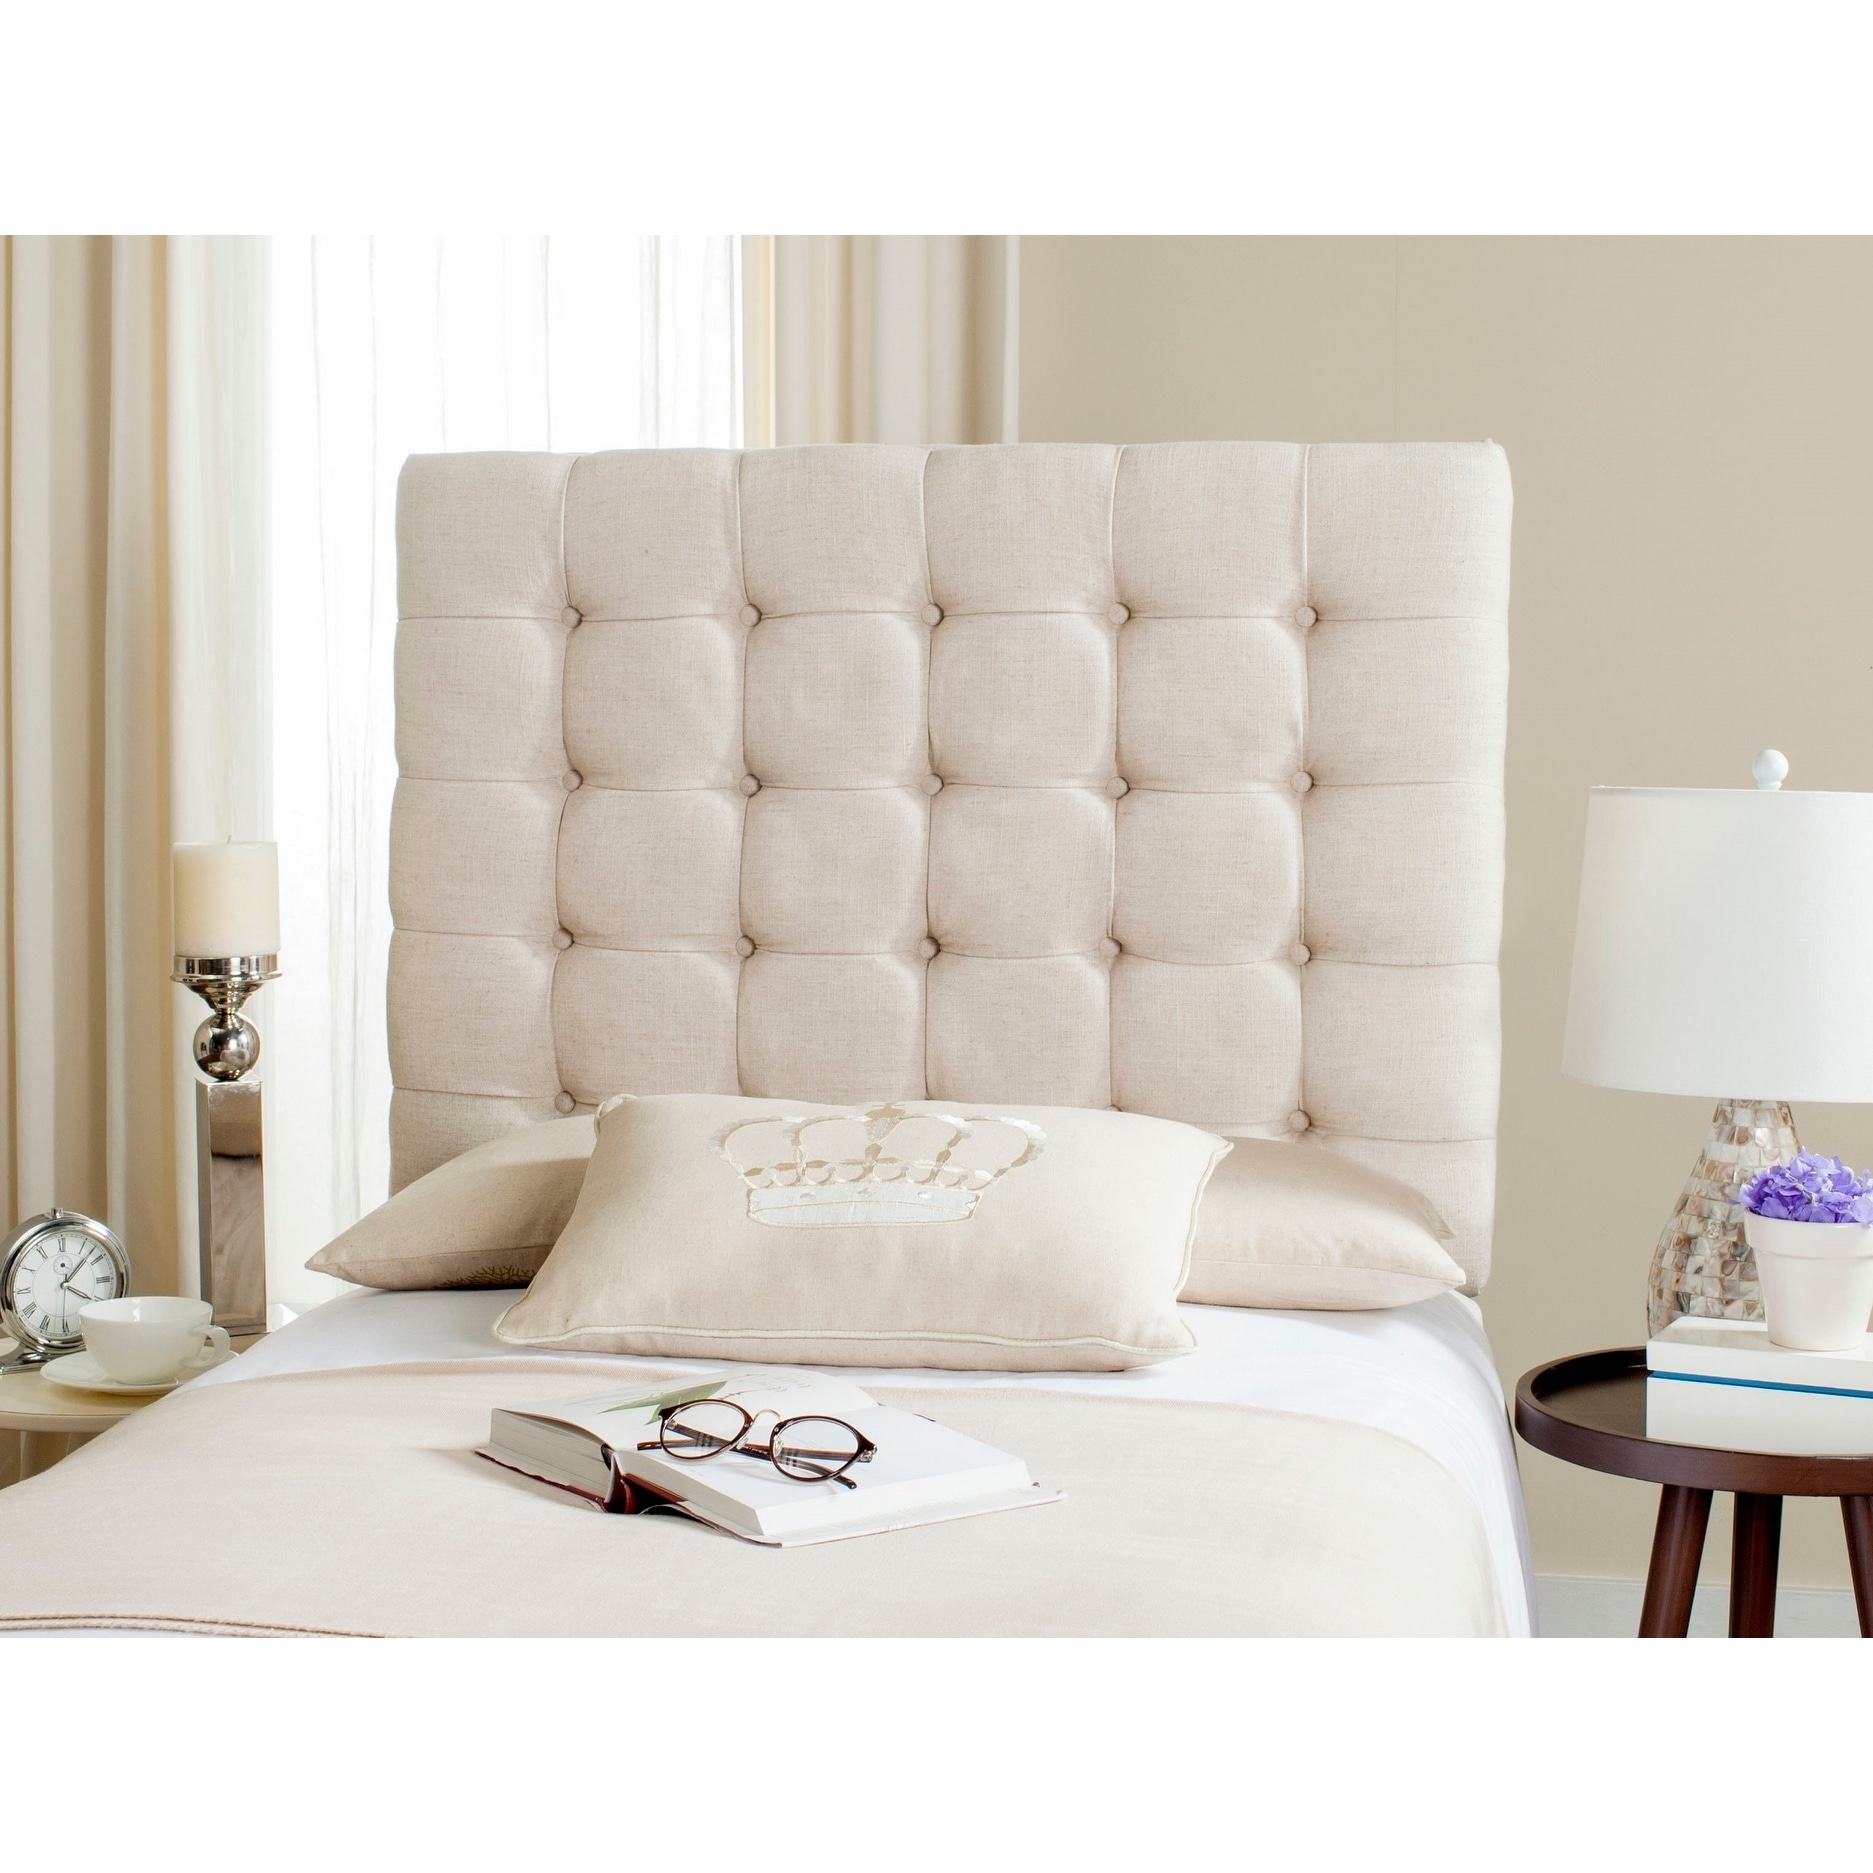 dbade1f56cded Details about Safavieh Lamar Wheat Upholstered Tufted Headboard (Twin)